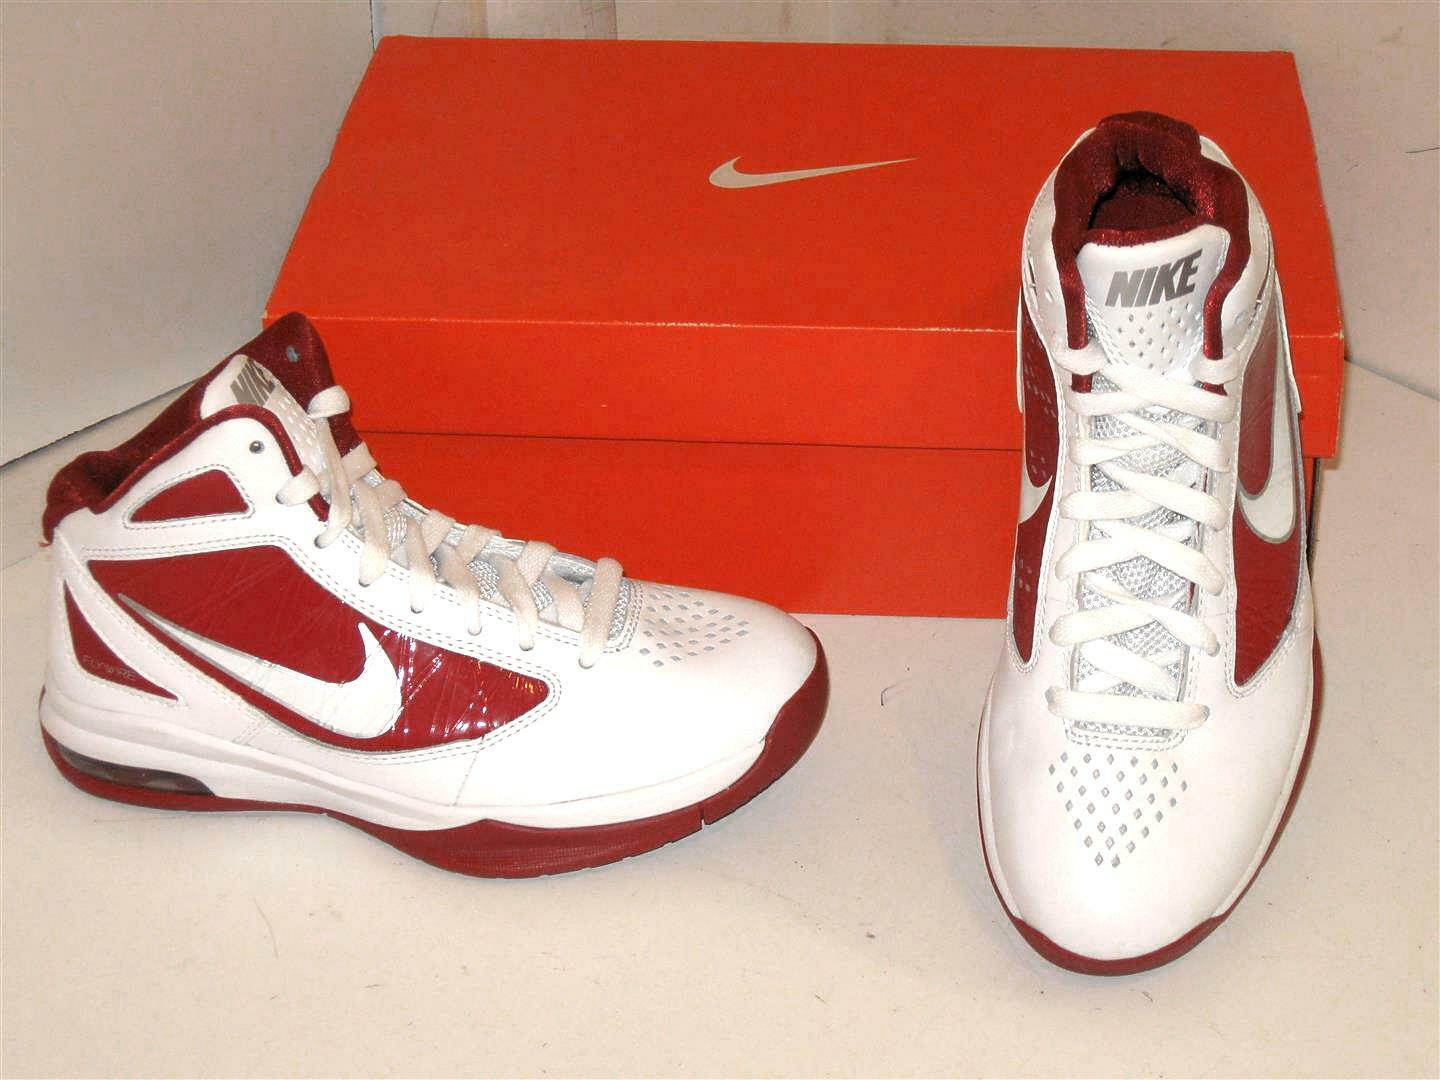 Nike Air Max Destiny TB Basketball White & Red Sneakers Athletic shoes Mens 18